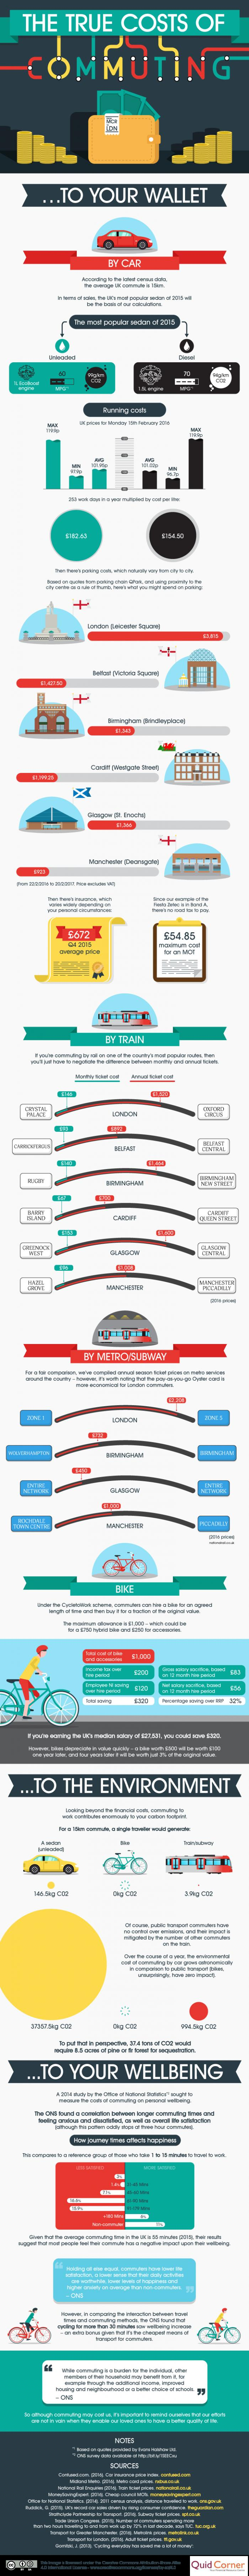 the-true-cost-of-commuting